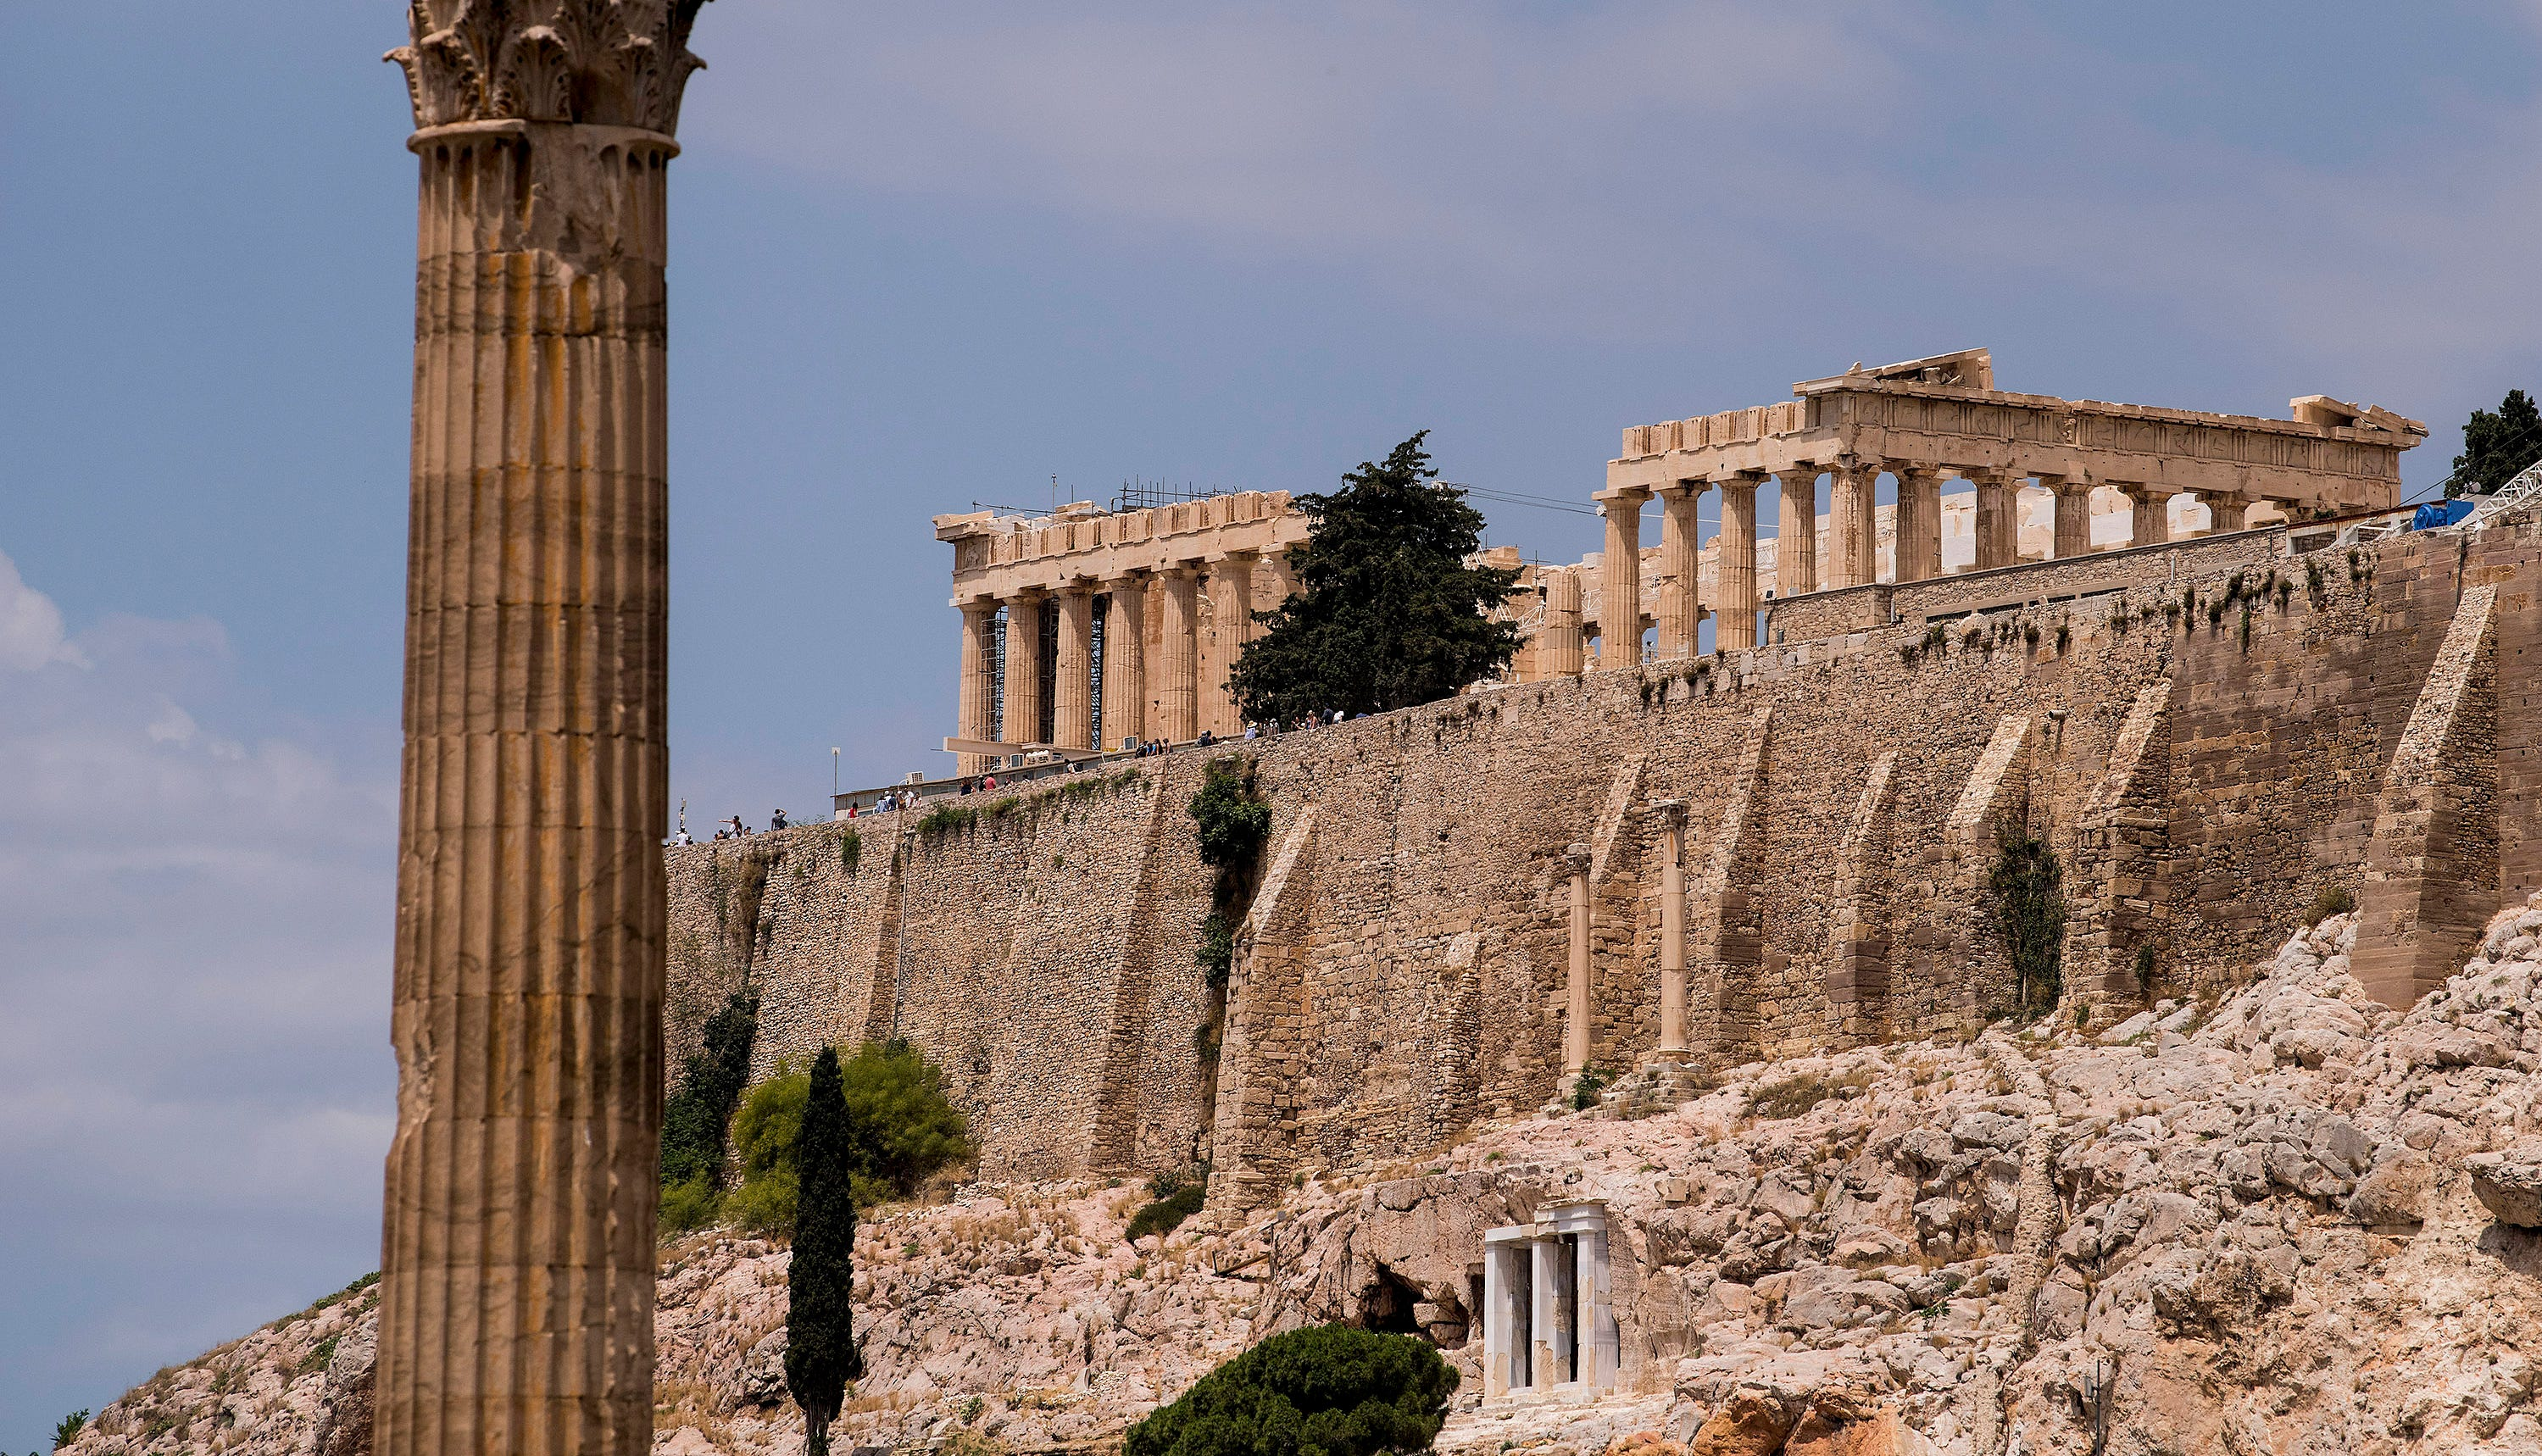 The Parthenon on top of the Acropolis in  Athens.